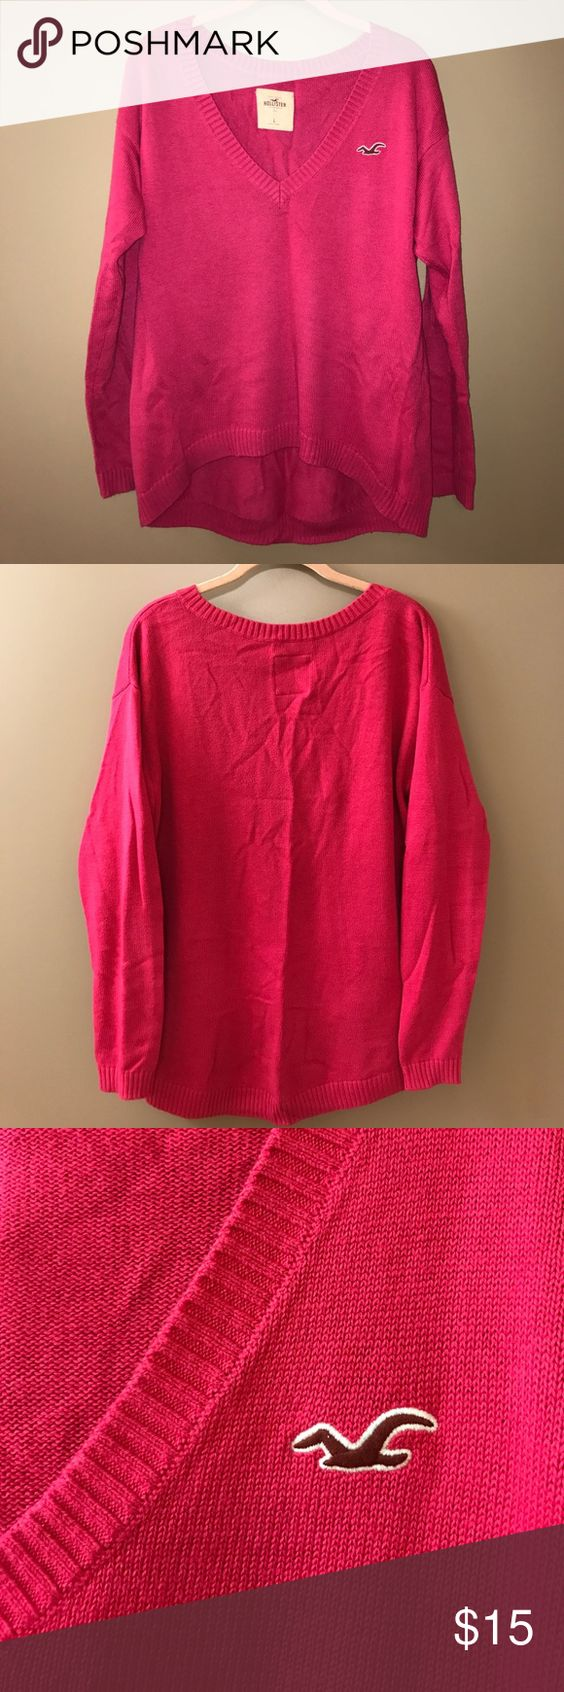 Hot Pink V-neck Sweater | Pink, Nice and Hot pink sweater